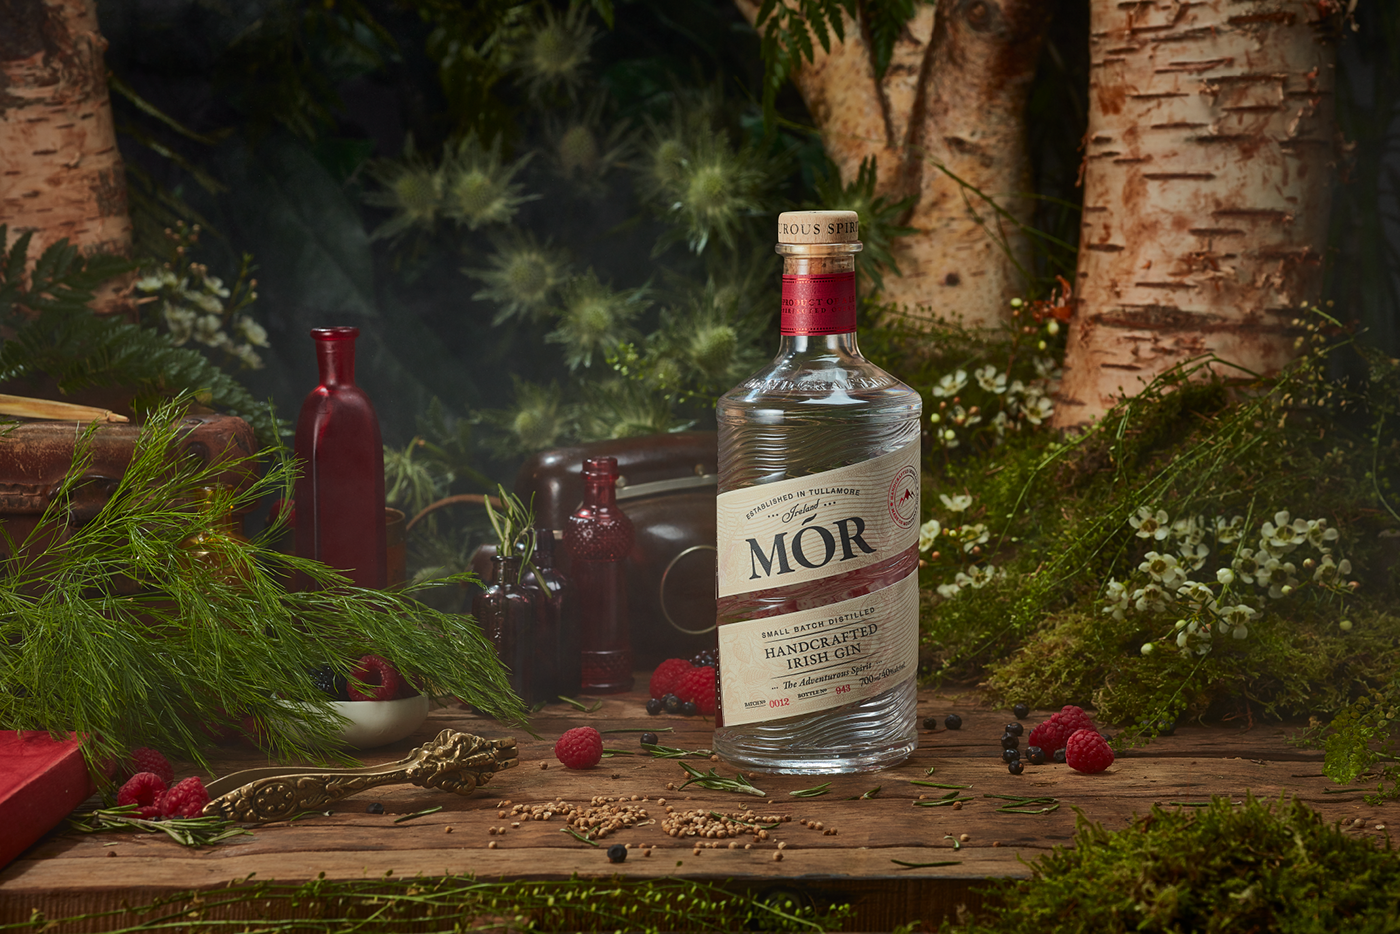 Irish Brand and Packaging Design for Wild Berry Gin / World Brand & Packaging Design Society